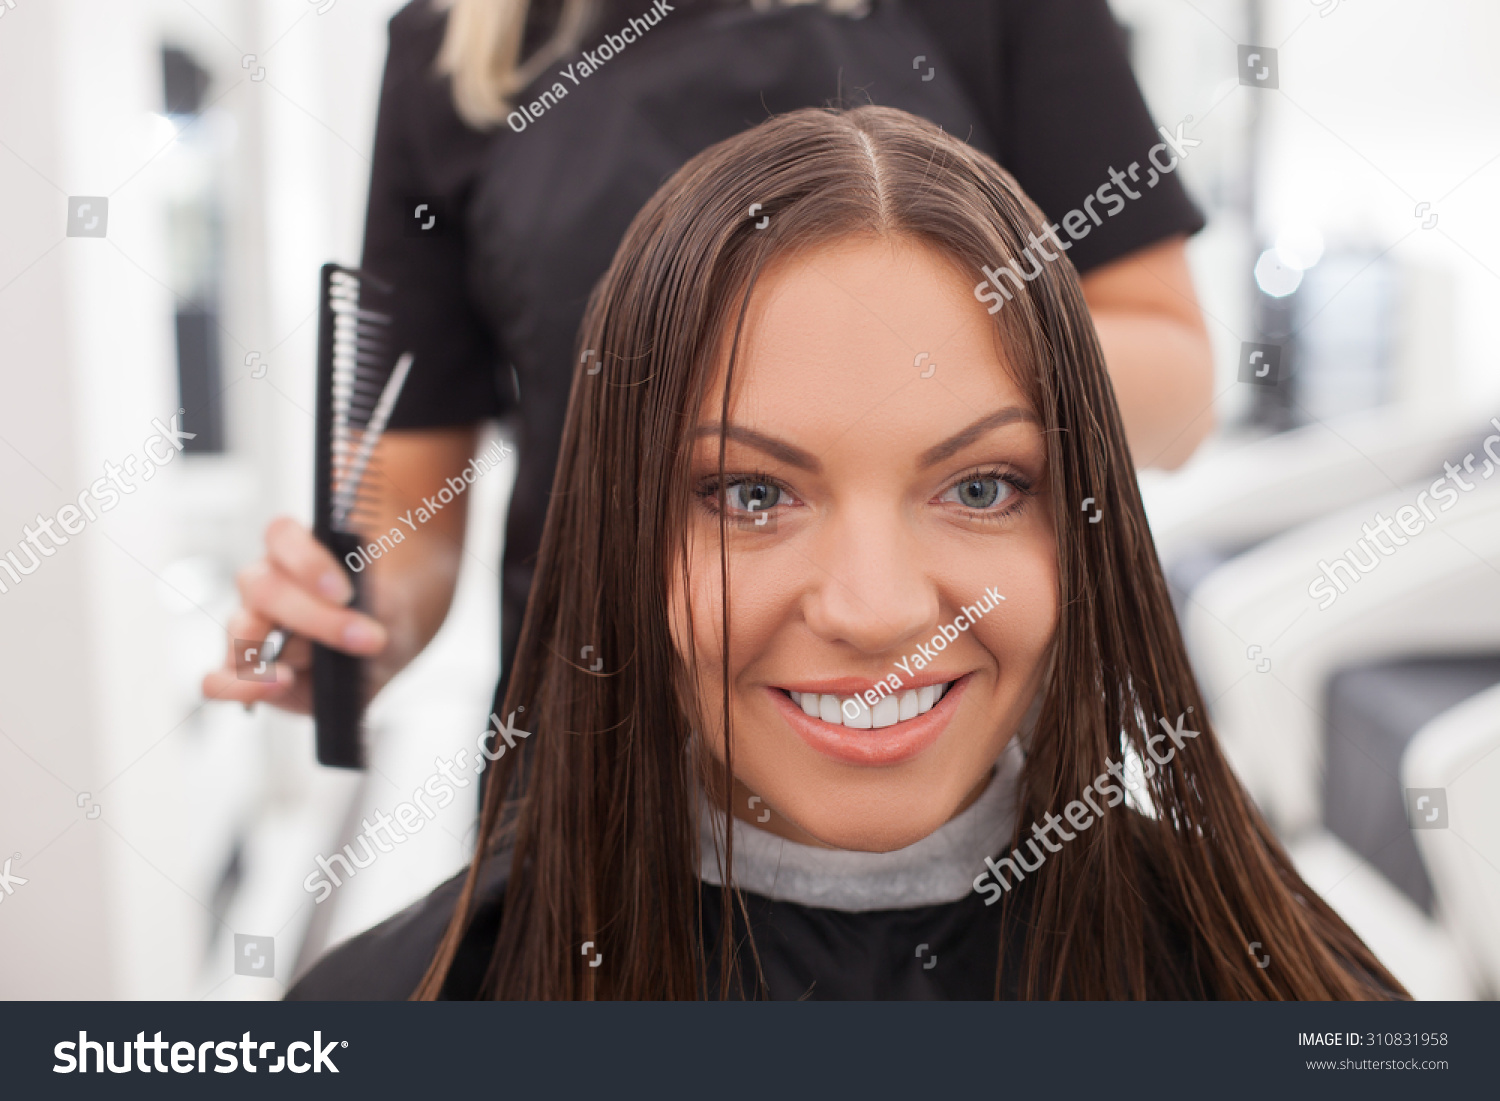 professional hairstylist is making a haircut to her customer she is standing behind the woman - Professional Hair Stylist